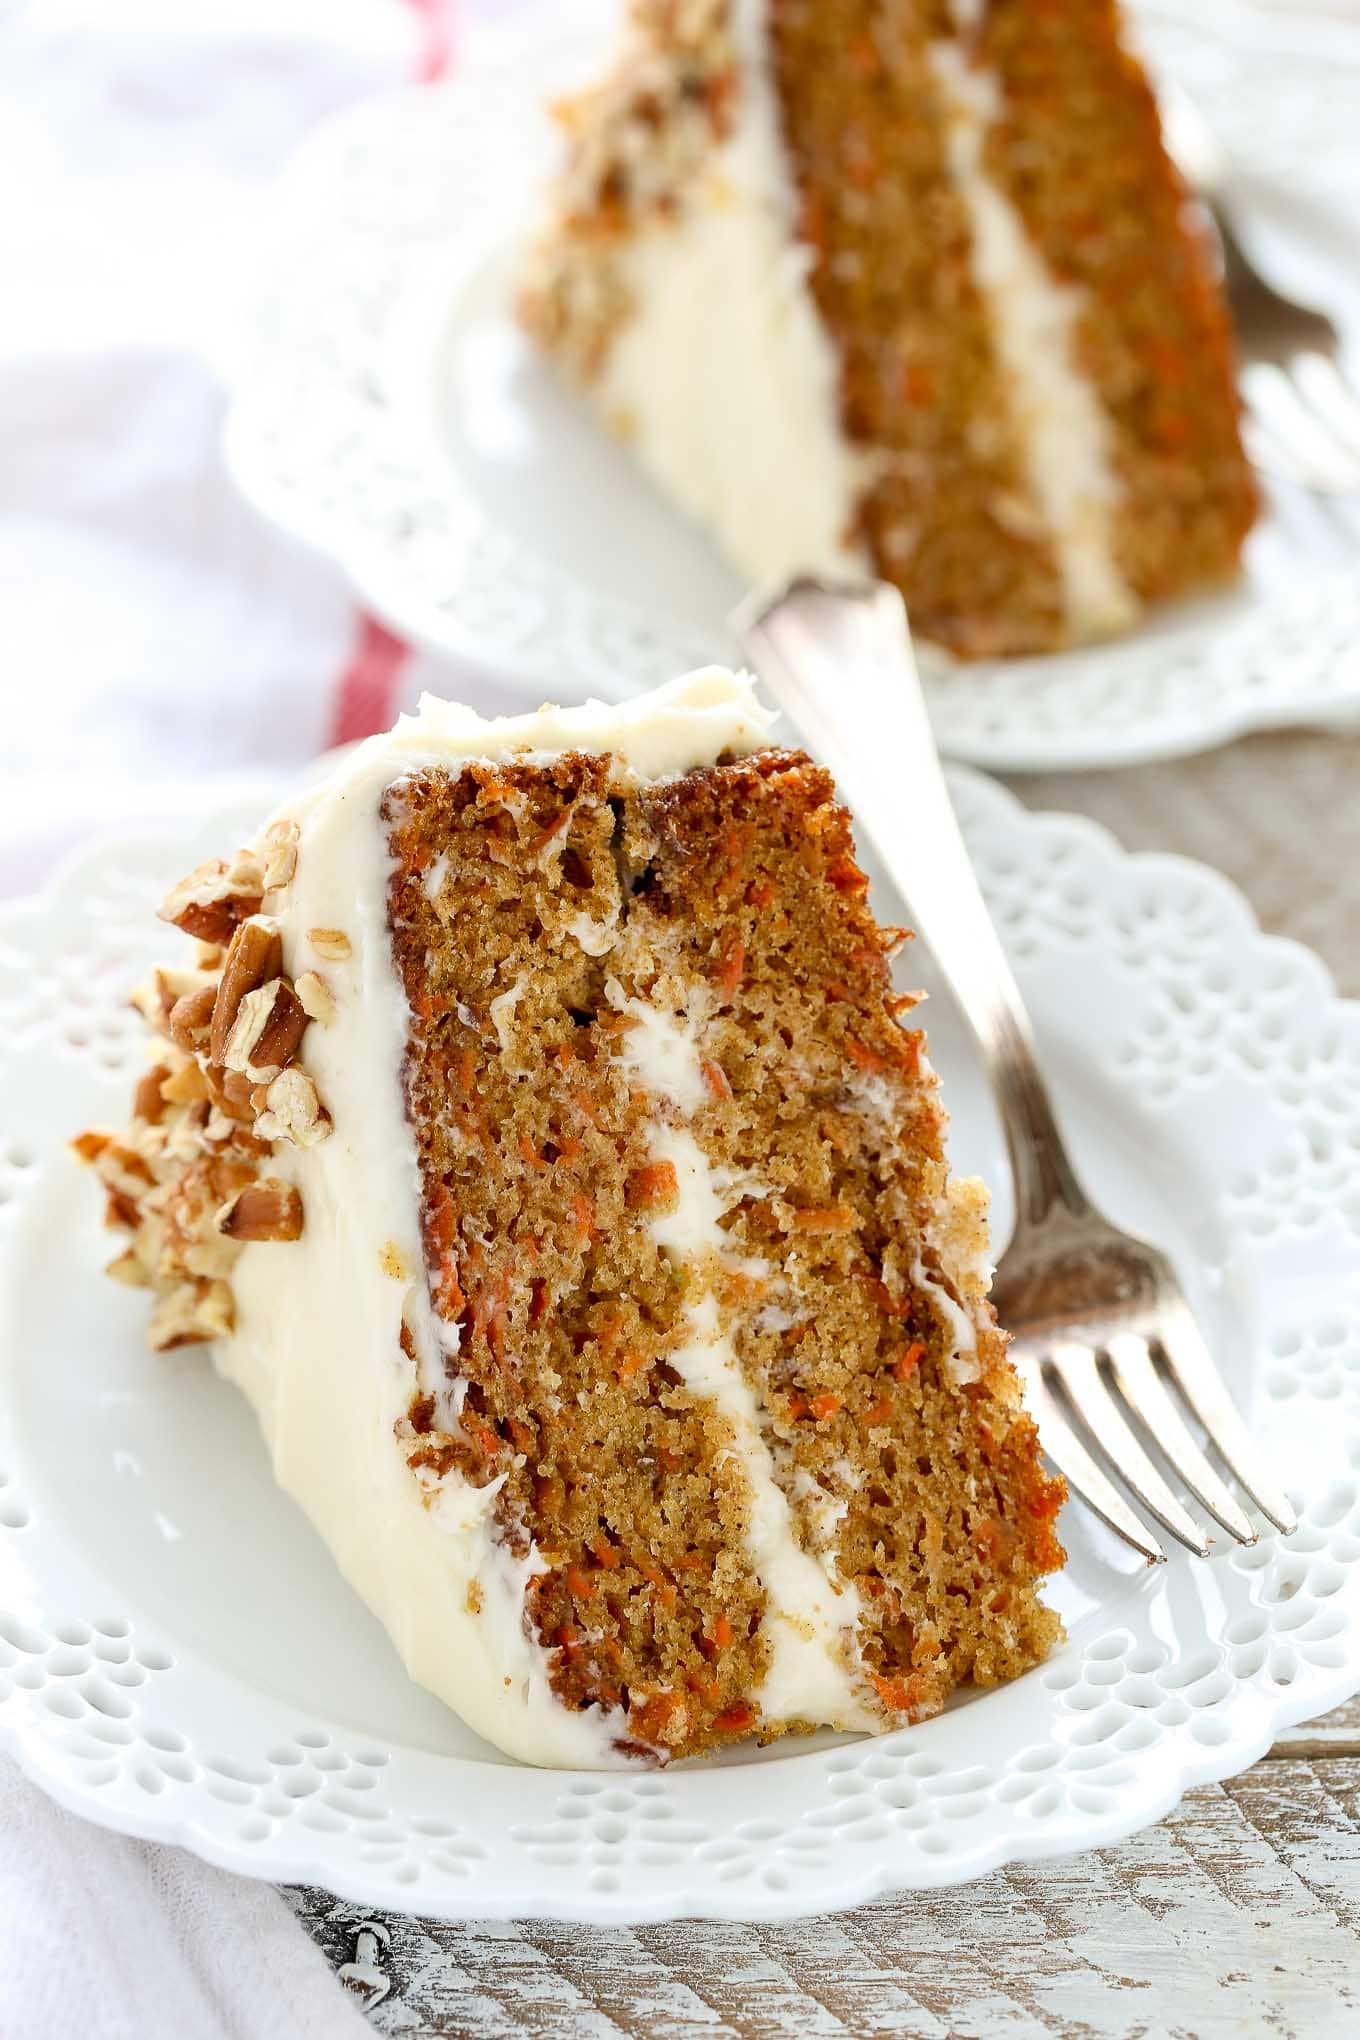 Cream Cheese Carrot Cake Topping Recipe